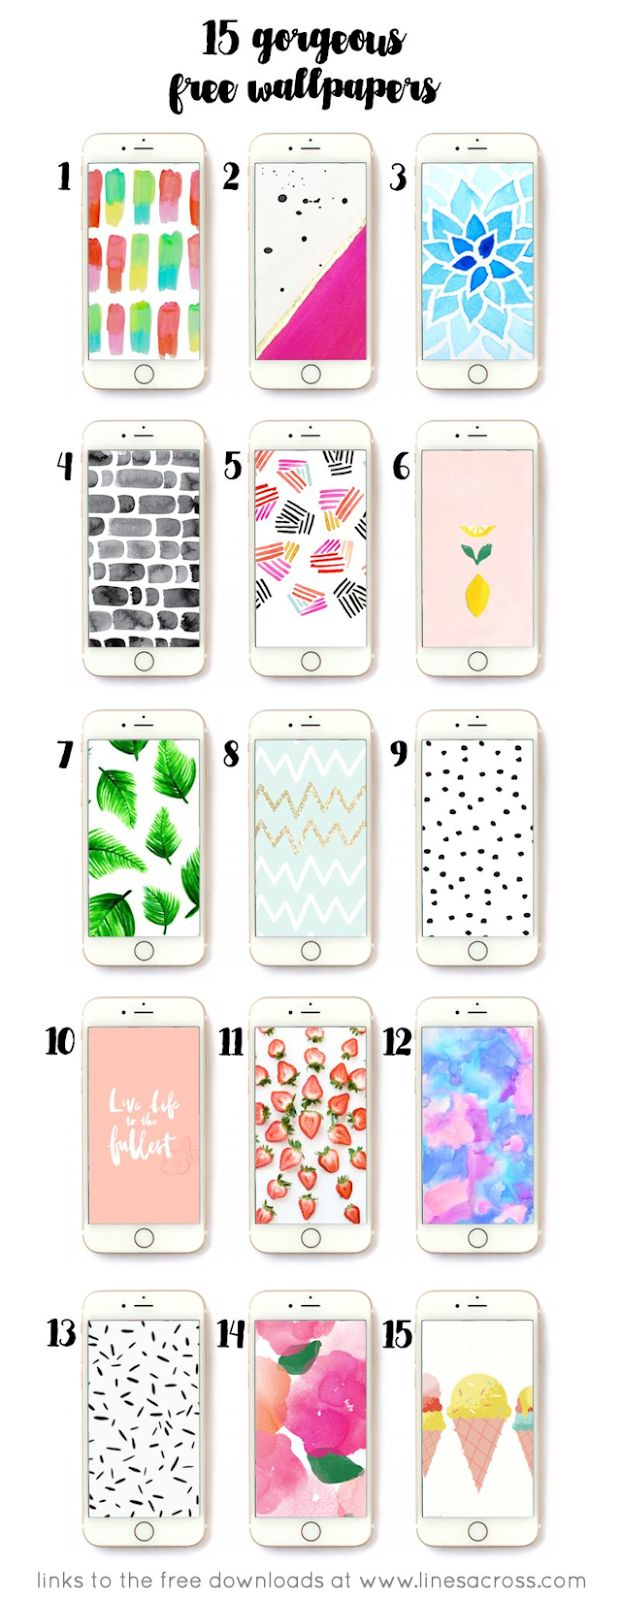 FREEBIE // 15 Gorgeous Free iPhone Wallpapers, with strawberries, floral designs, bricks, leaves, dots, chevron and ice cream cones